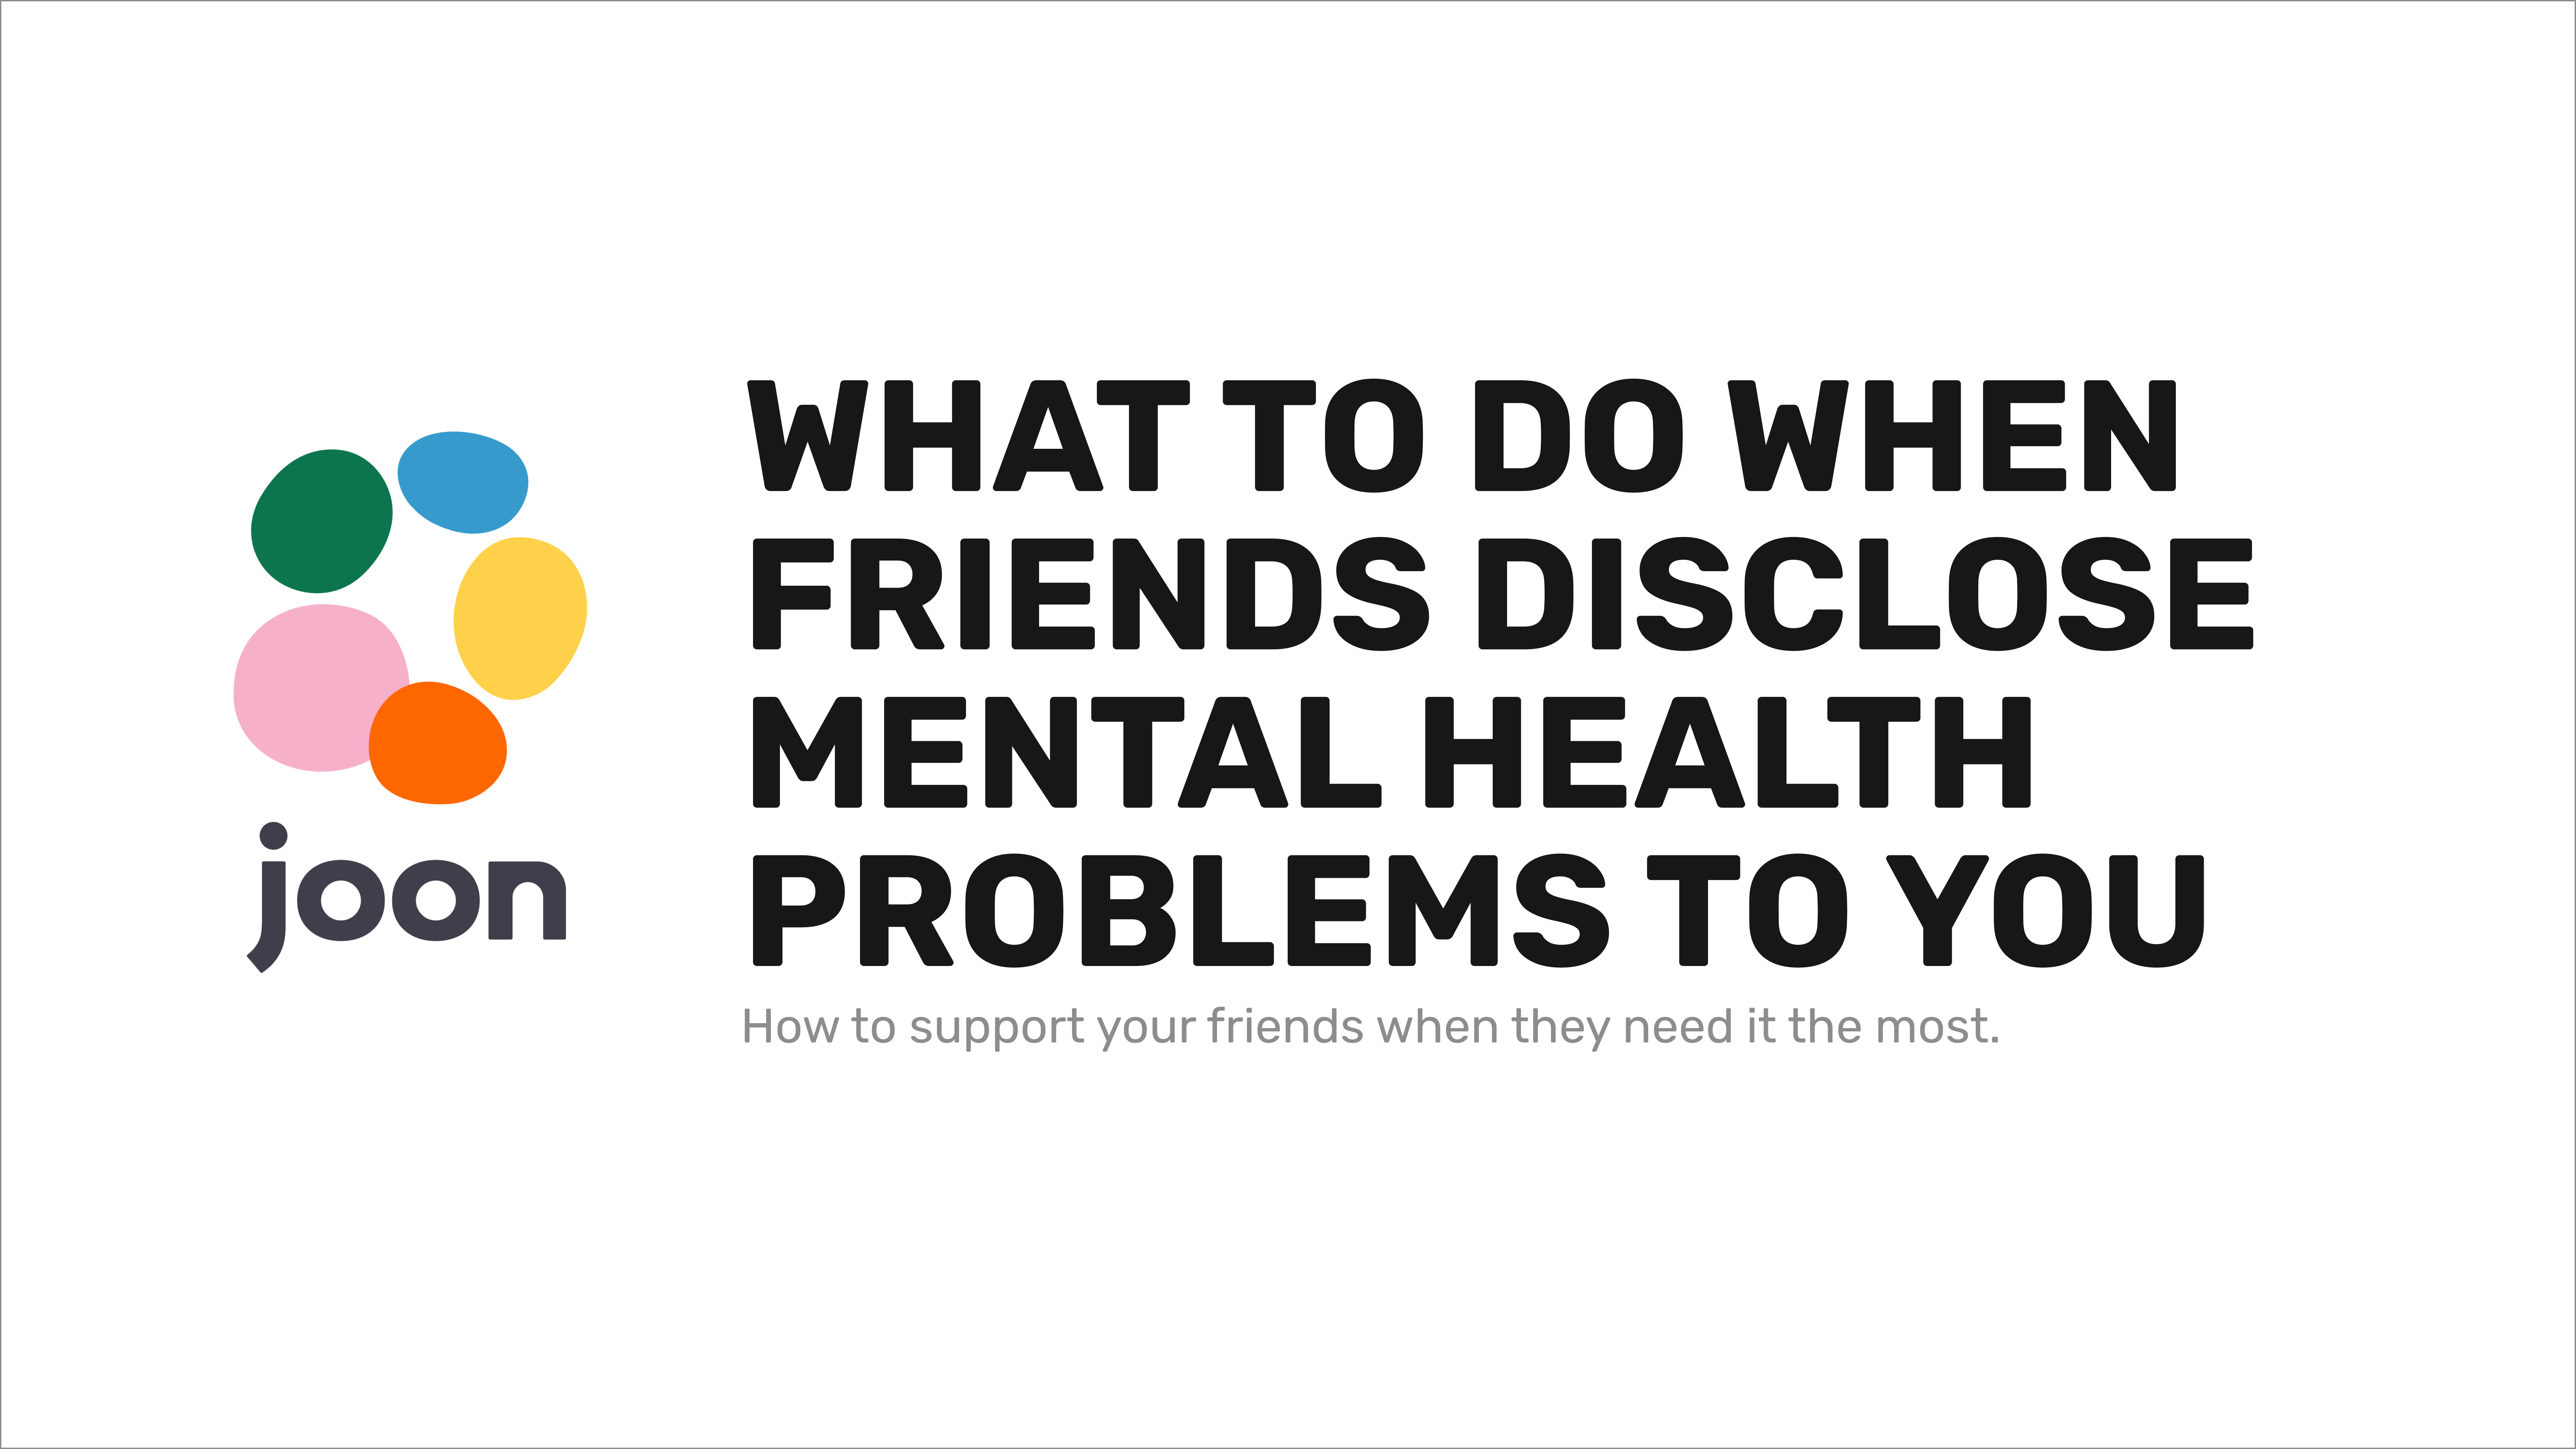 What To Do When Friends Disclose Mental Health Problems to You